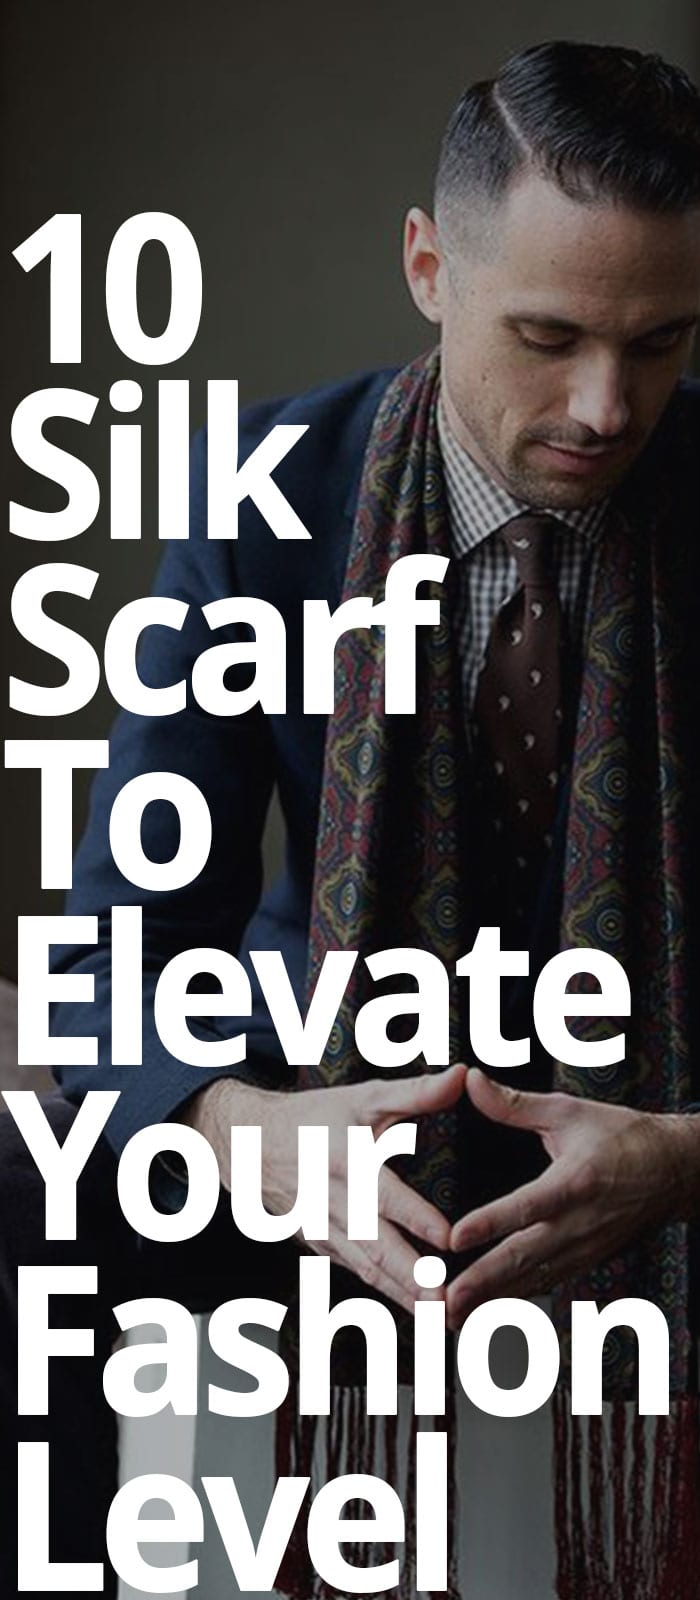 10 SILK SCARF TO ELEVATE YOUR FASHION